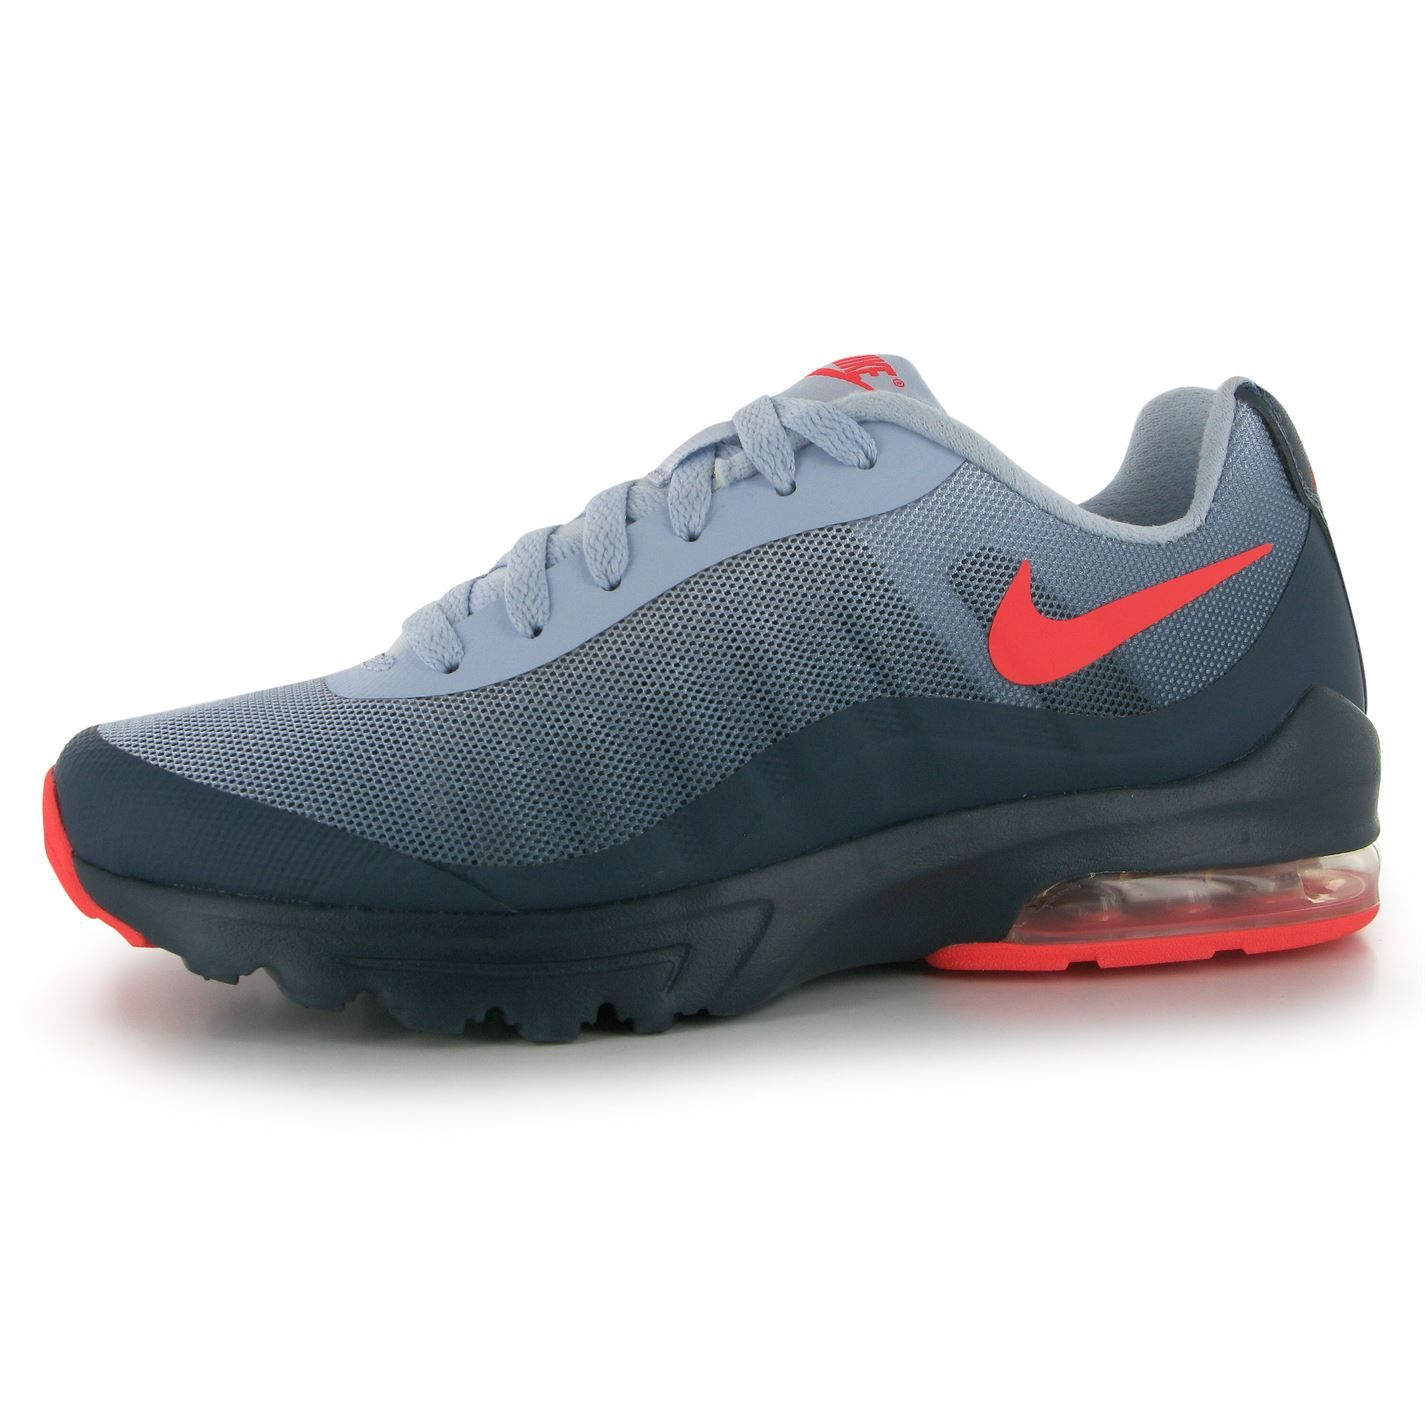 nike air max invigor print womens trainers black\/grey yeezy